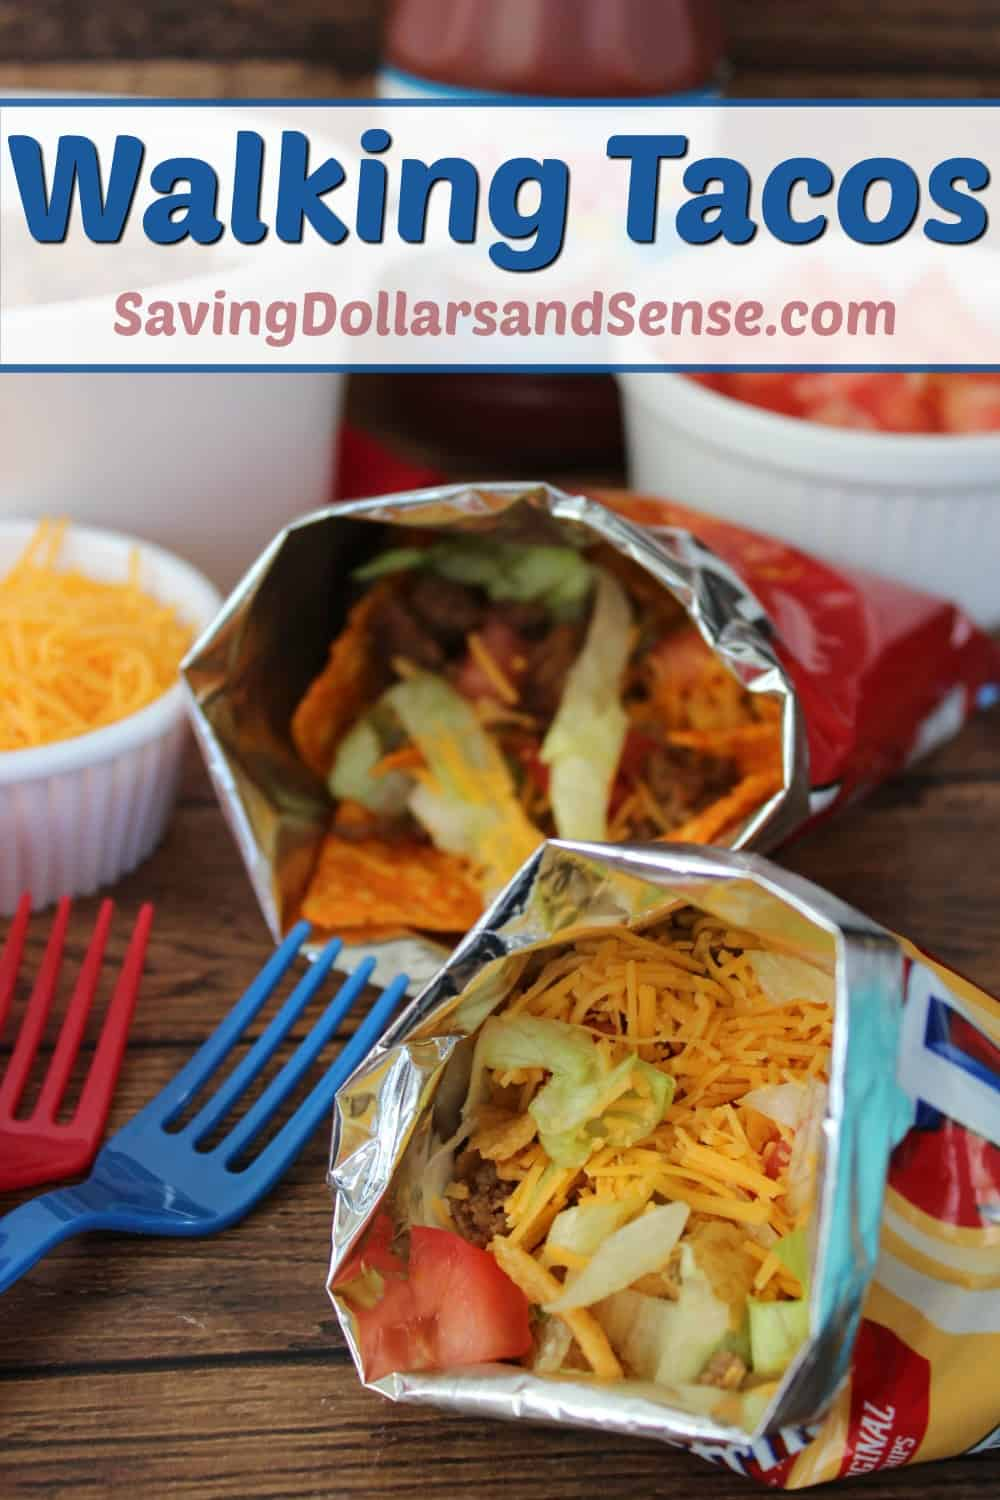 This Walking Tacos recipe is such a nice and easy idea for any party.Just pick up a bunch of snack sized bags of Doritos or Fritos and add a few other toppings for your guests to choose from.I love that each person has the ability to customize their own Walking Tacos!